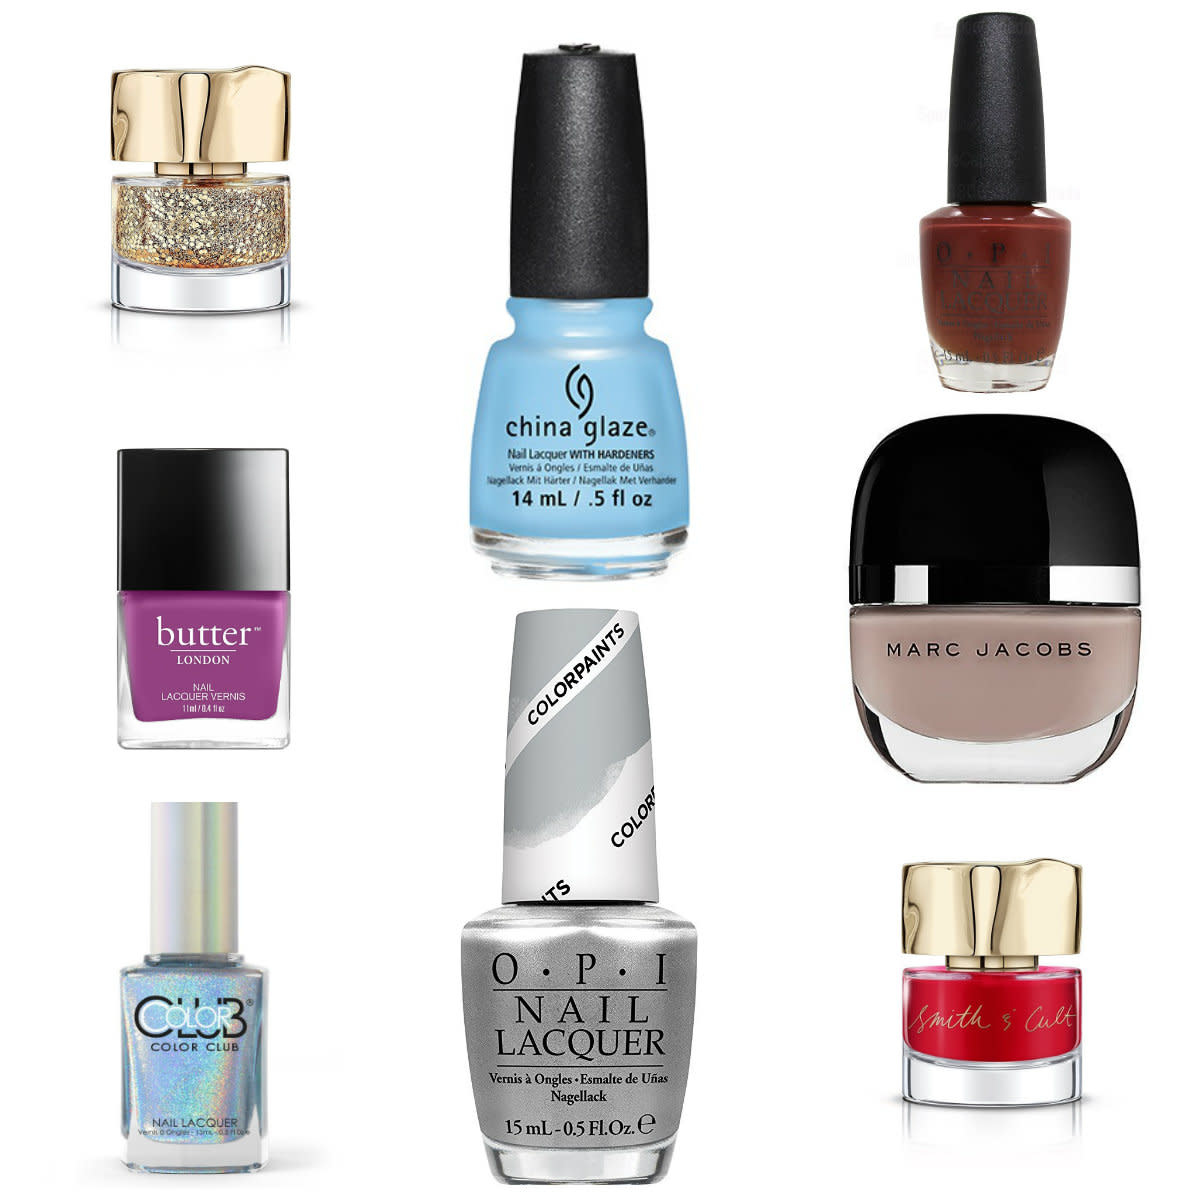 Top 10 Nail Polish Colors for Winter 2018-2019